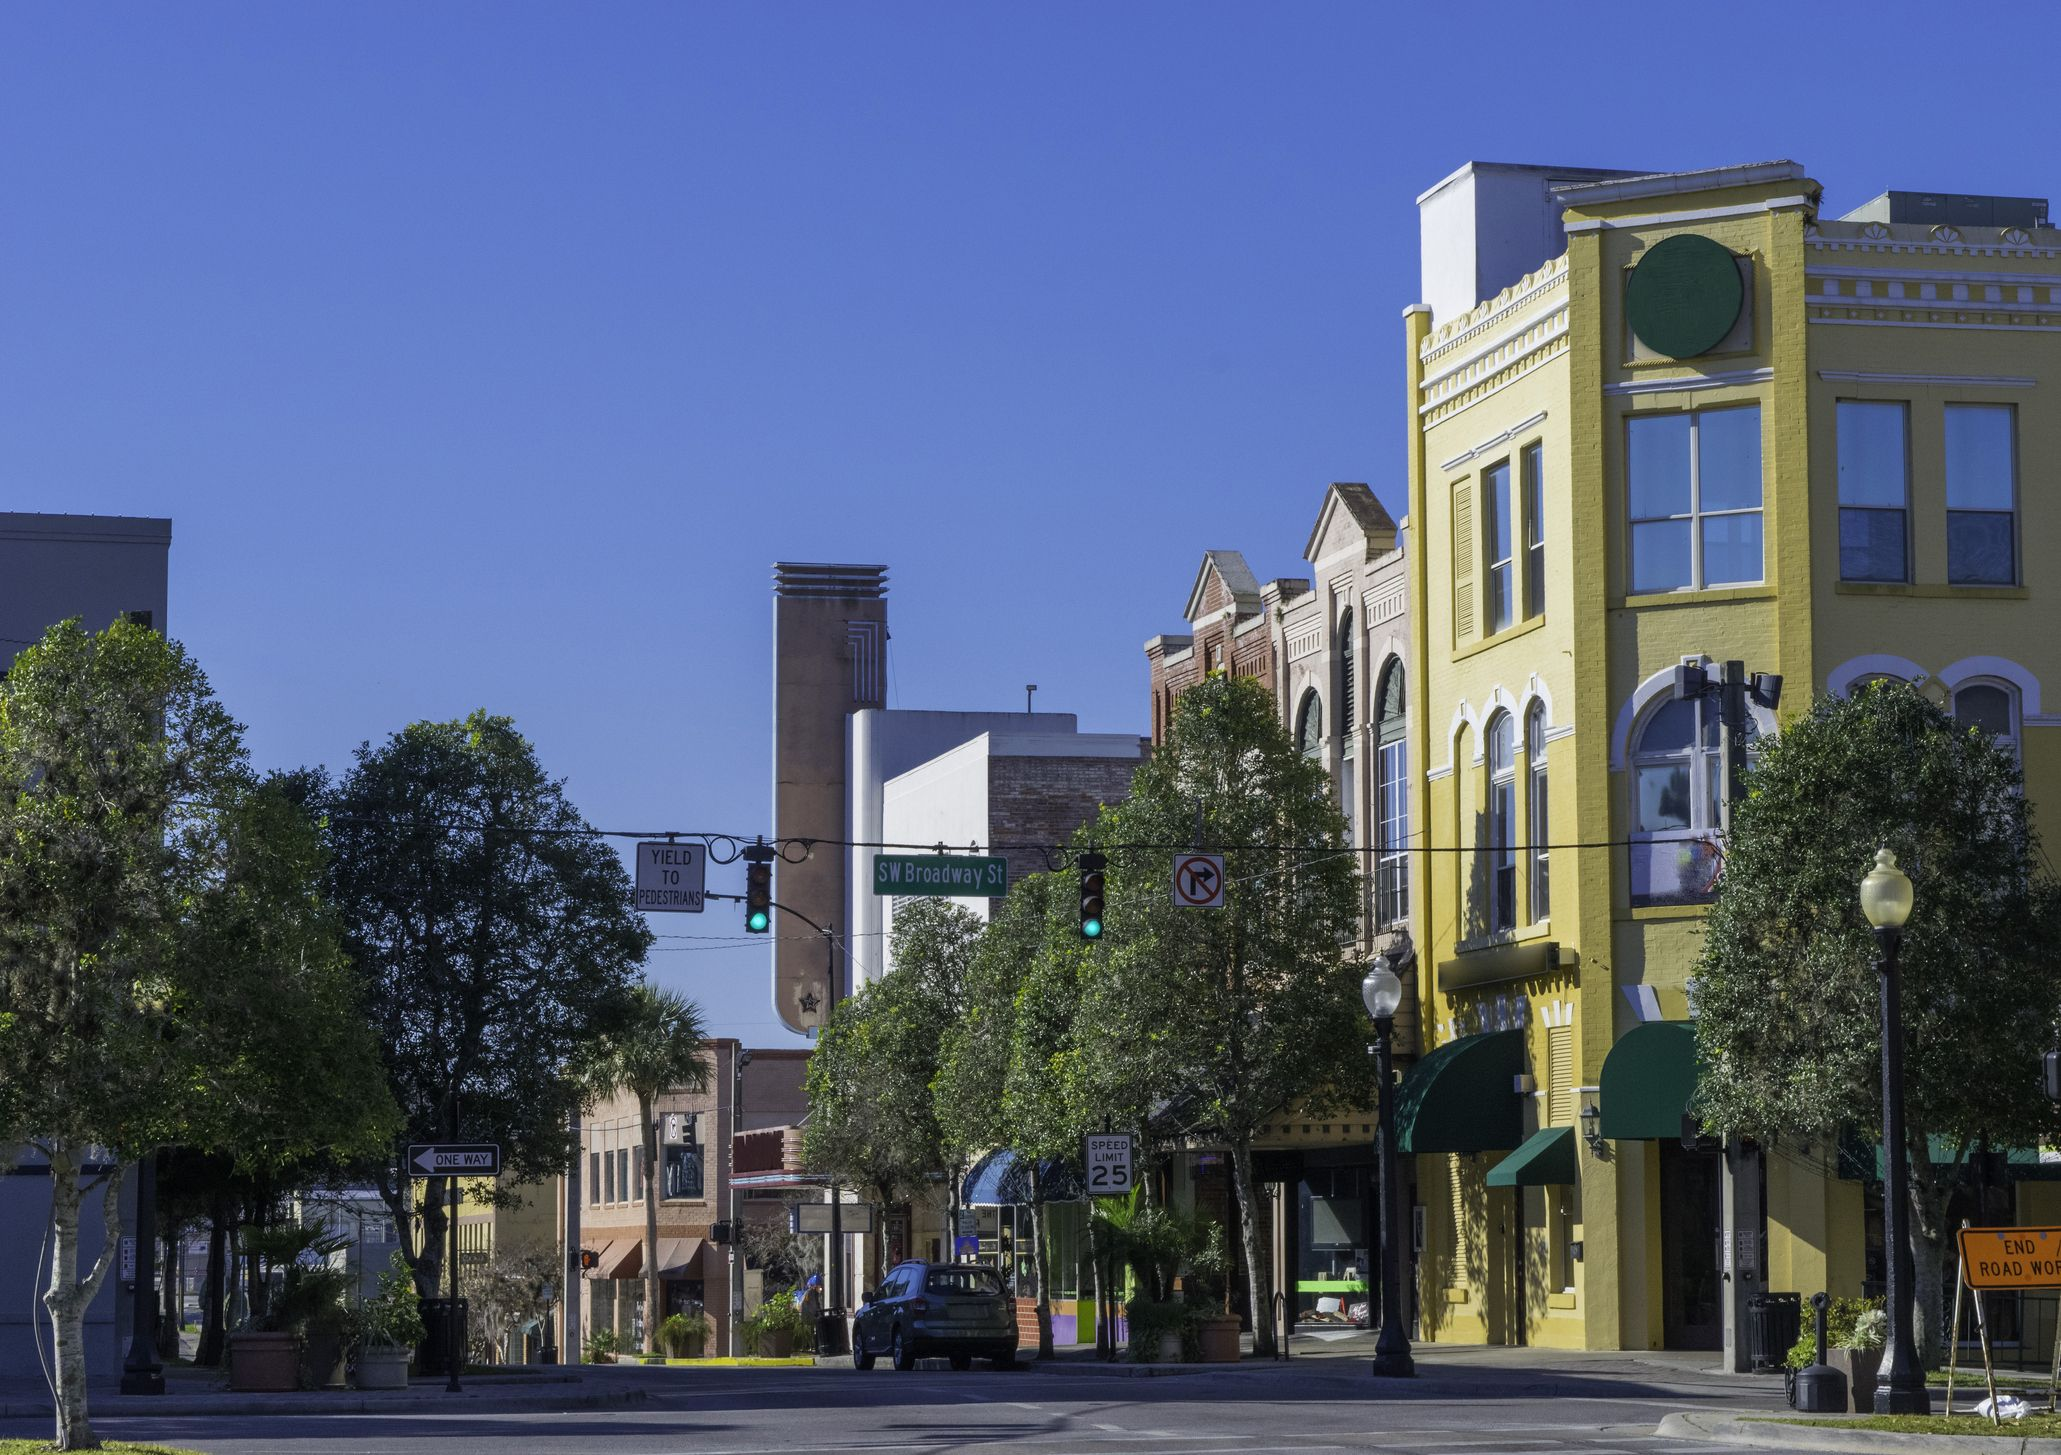 Historic Downtown Buildings in Southern USA